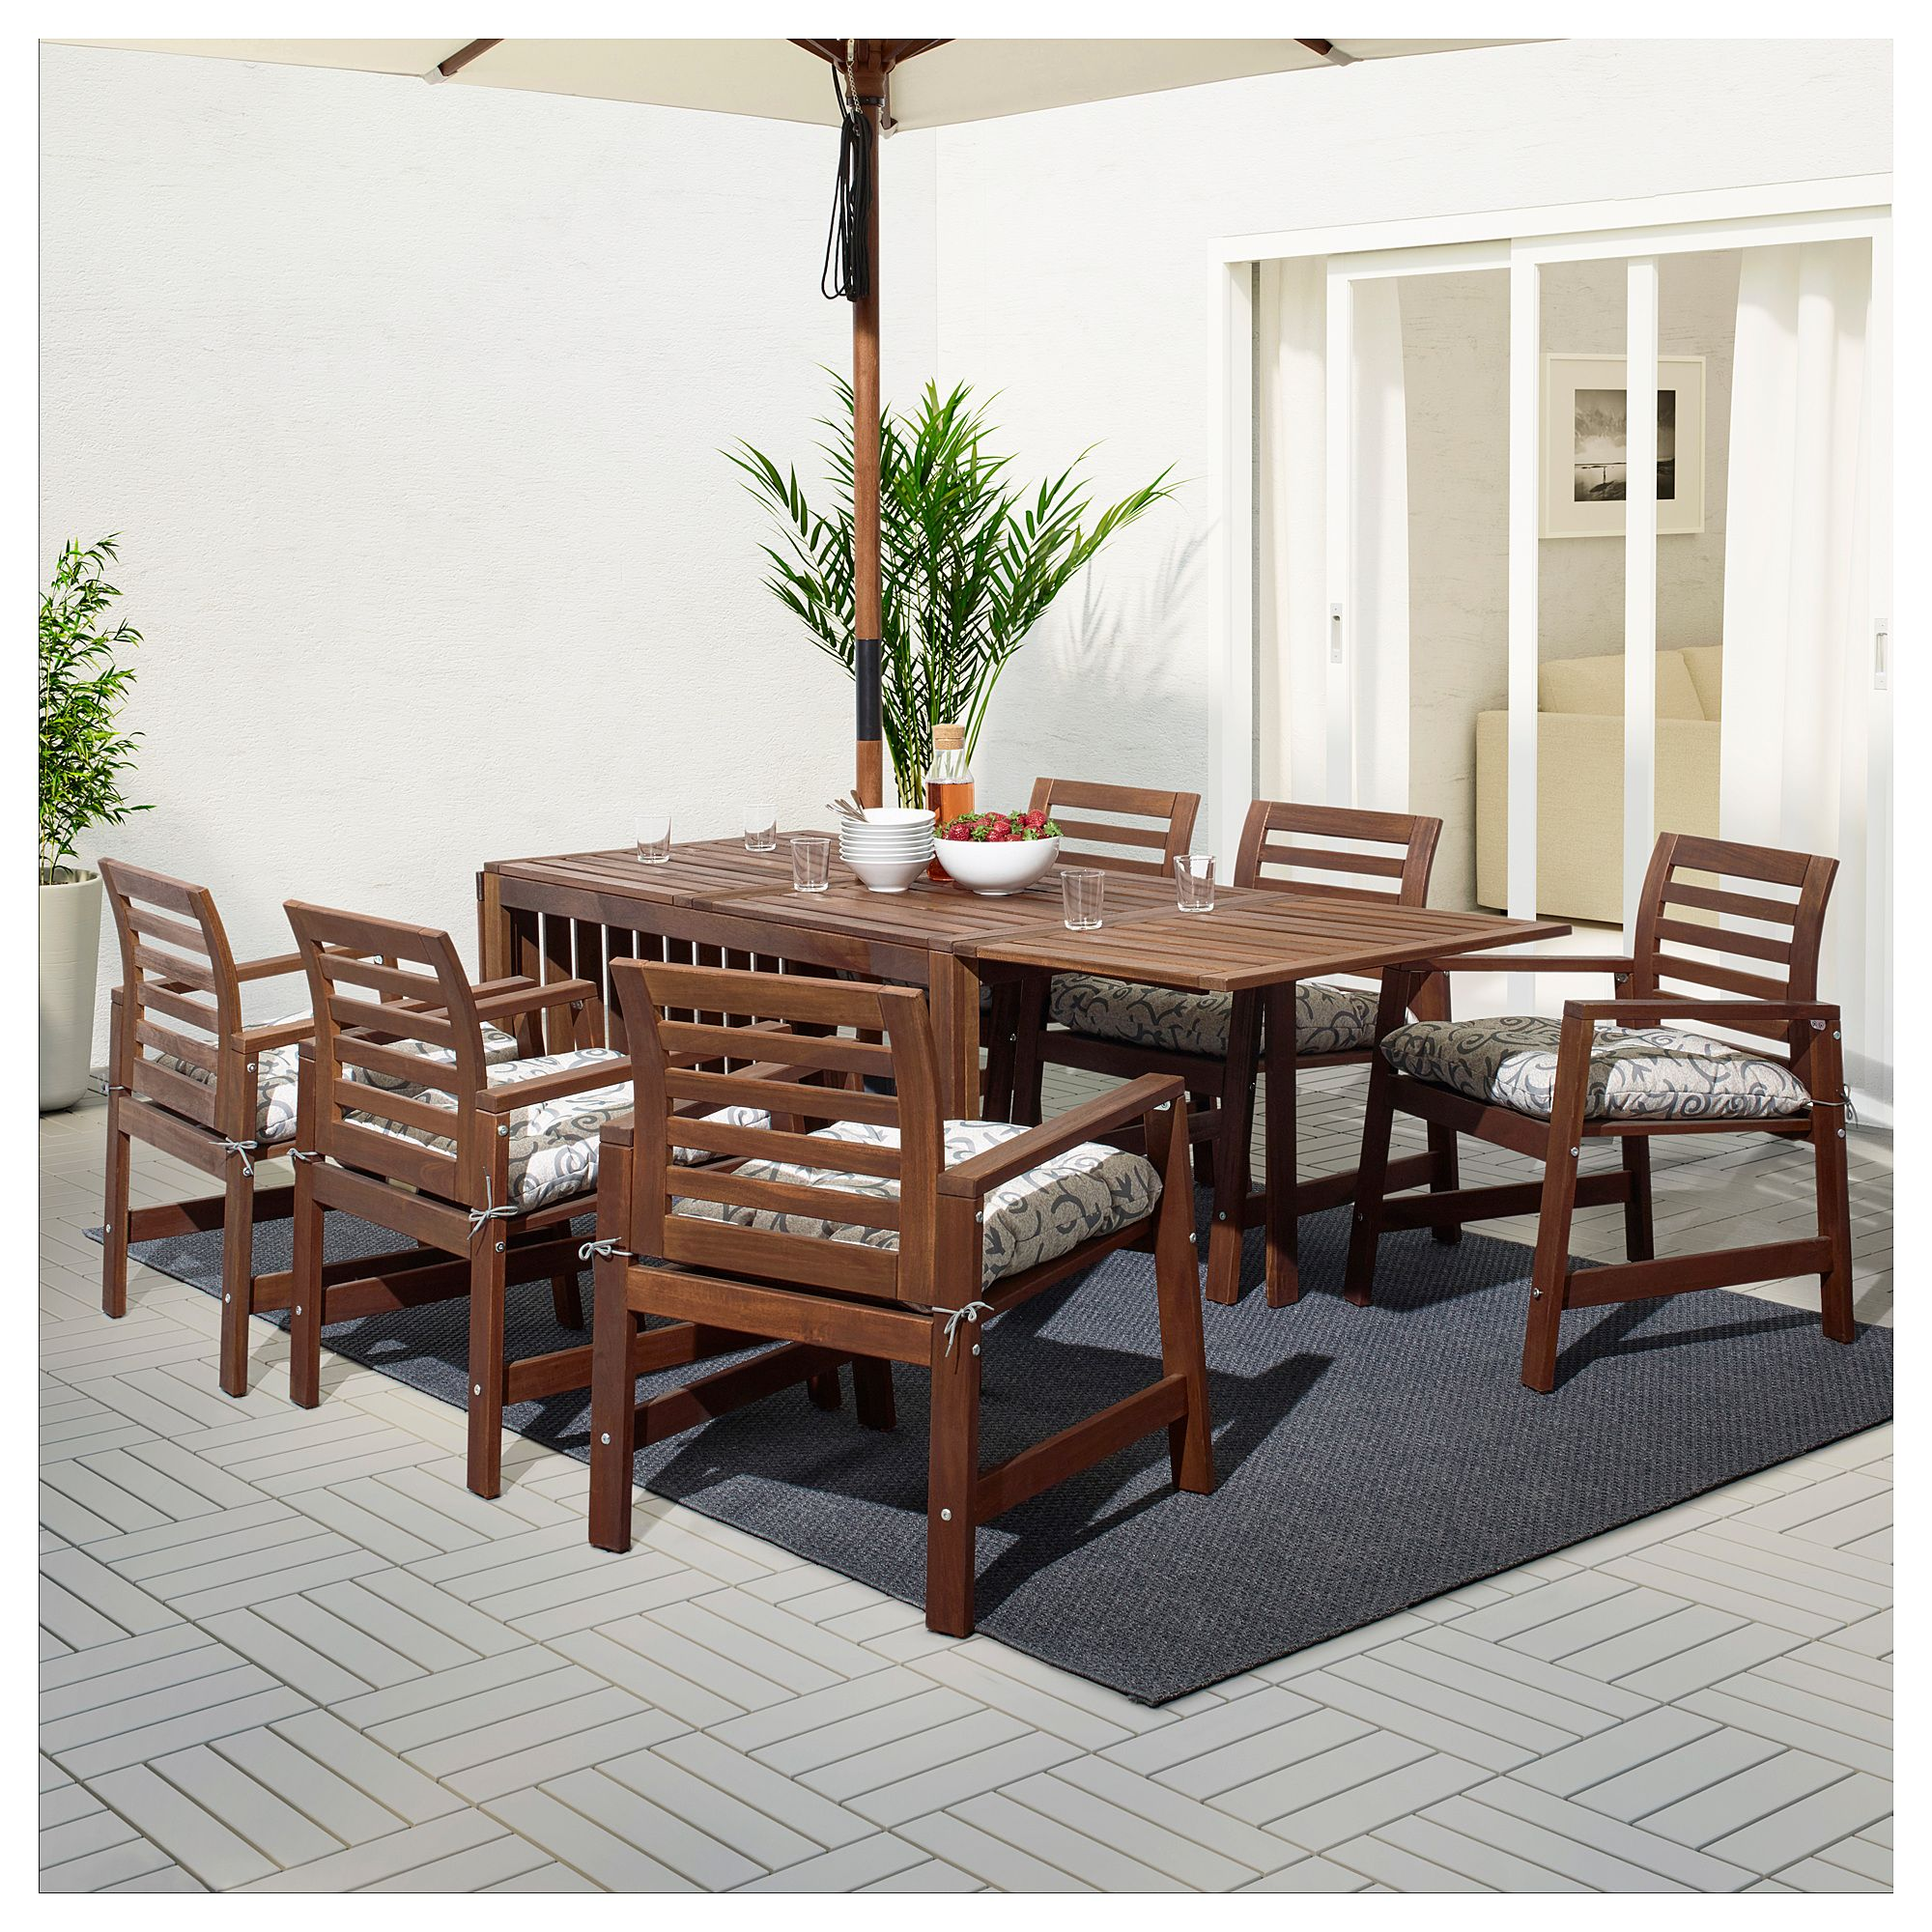 Ikea Laro Brown Stained Table 6 Armchairs Outdoor